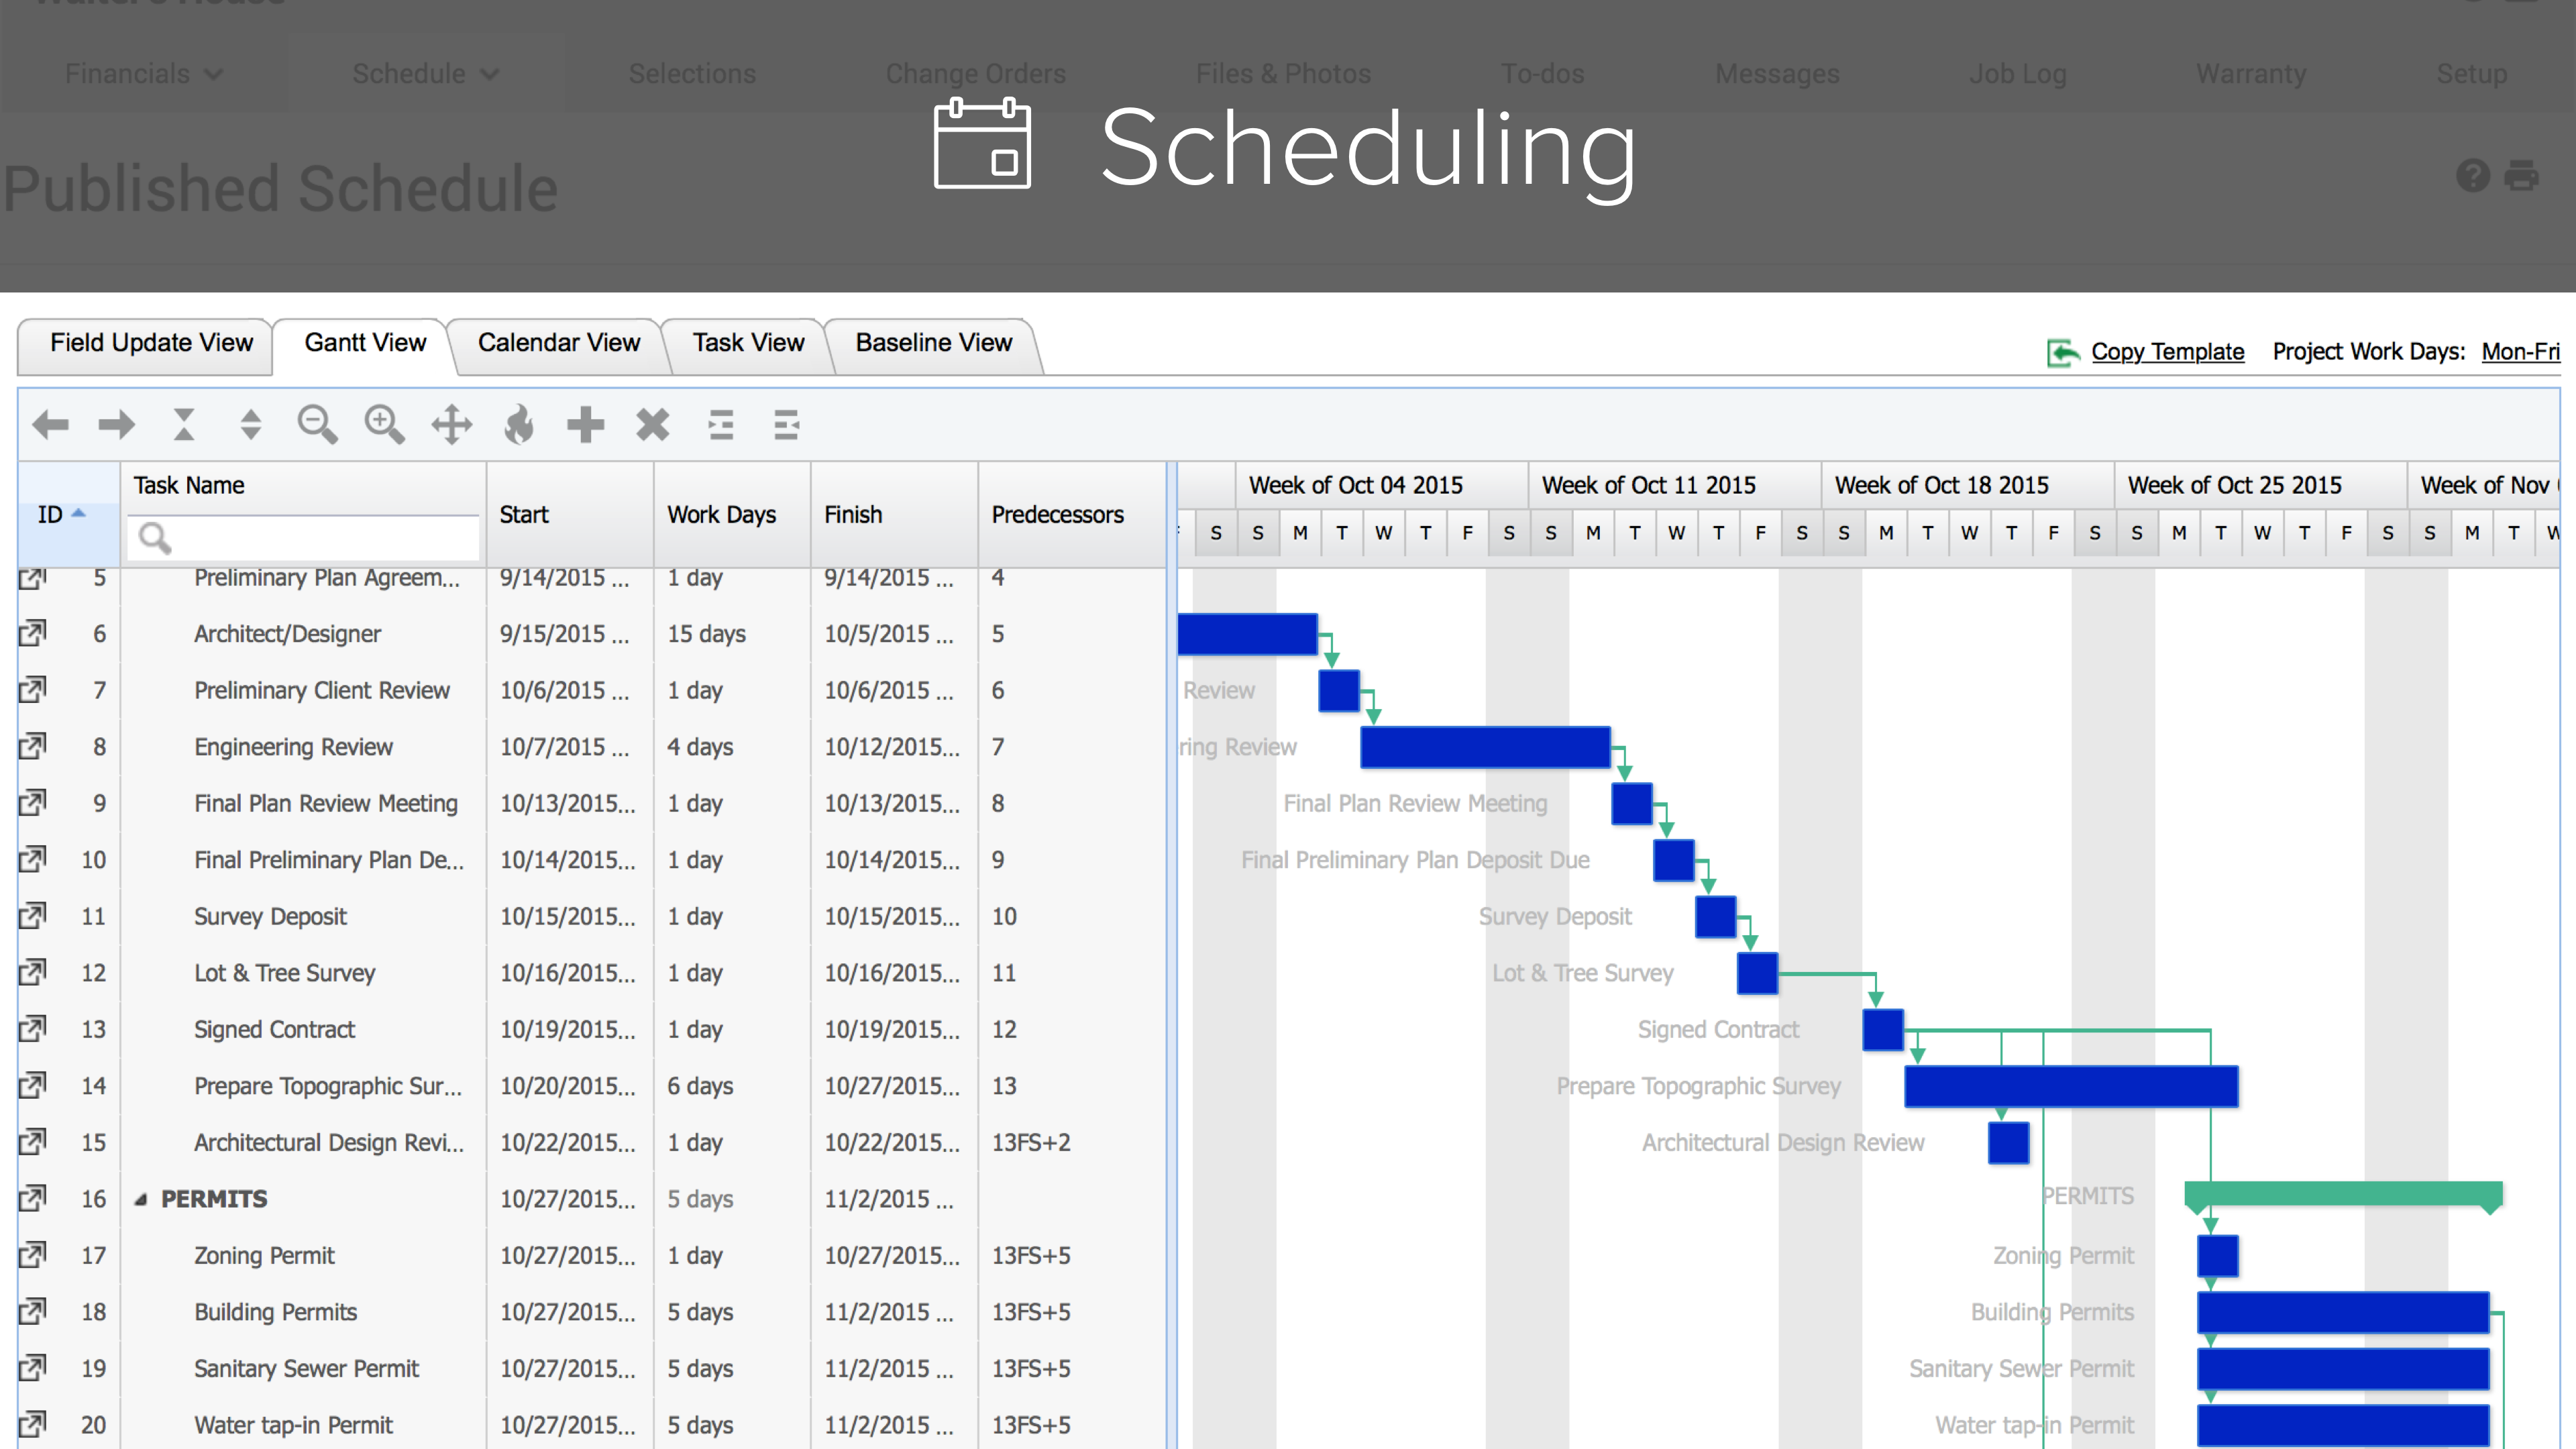 CoConstruct Software - Scheduling